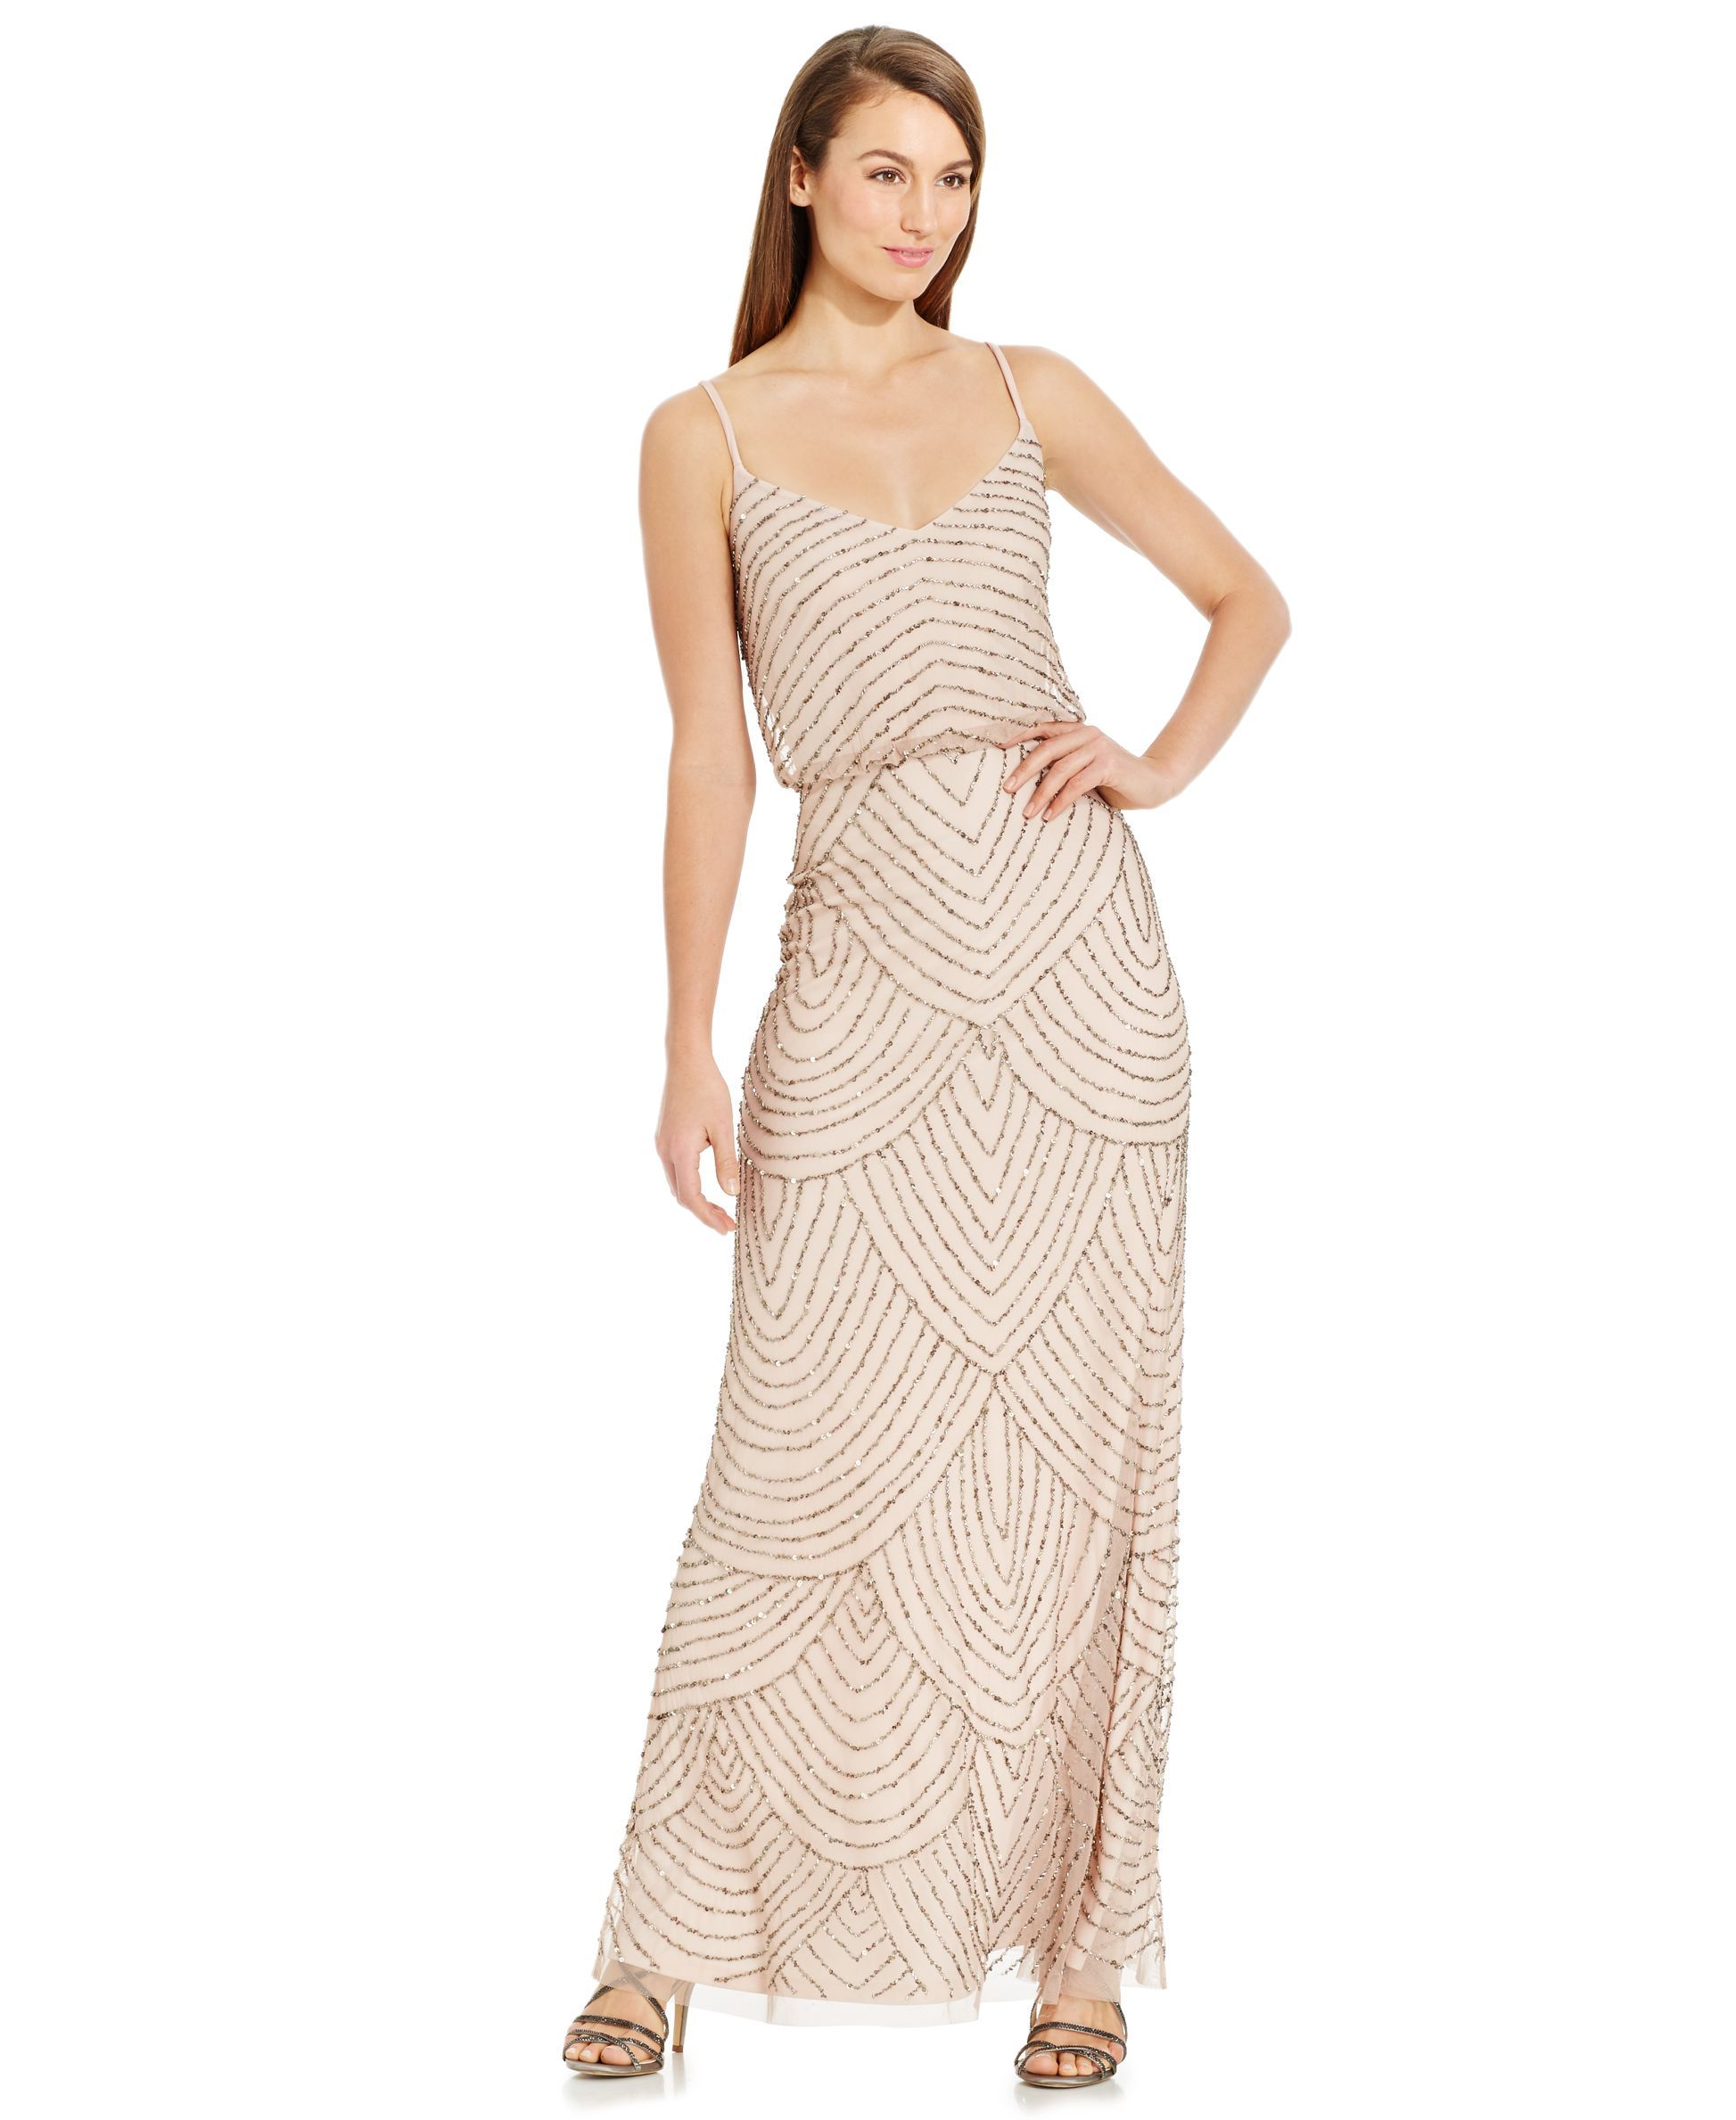 Adrianna Papell Dress Sleeveless Spaghetti Strap Beaded Blouson Evening Gown Womens Dresses Macy S Love Th Gowns Formal Dresses For Women Bridemaid Dress [ 2378 x 1947 Pixel ]